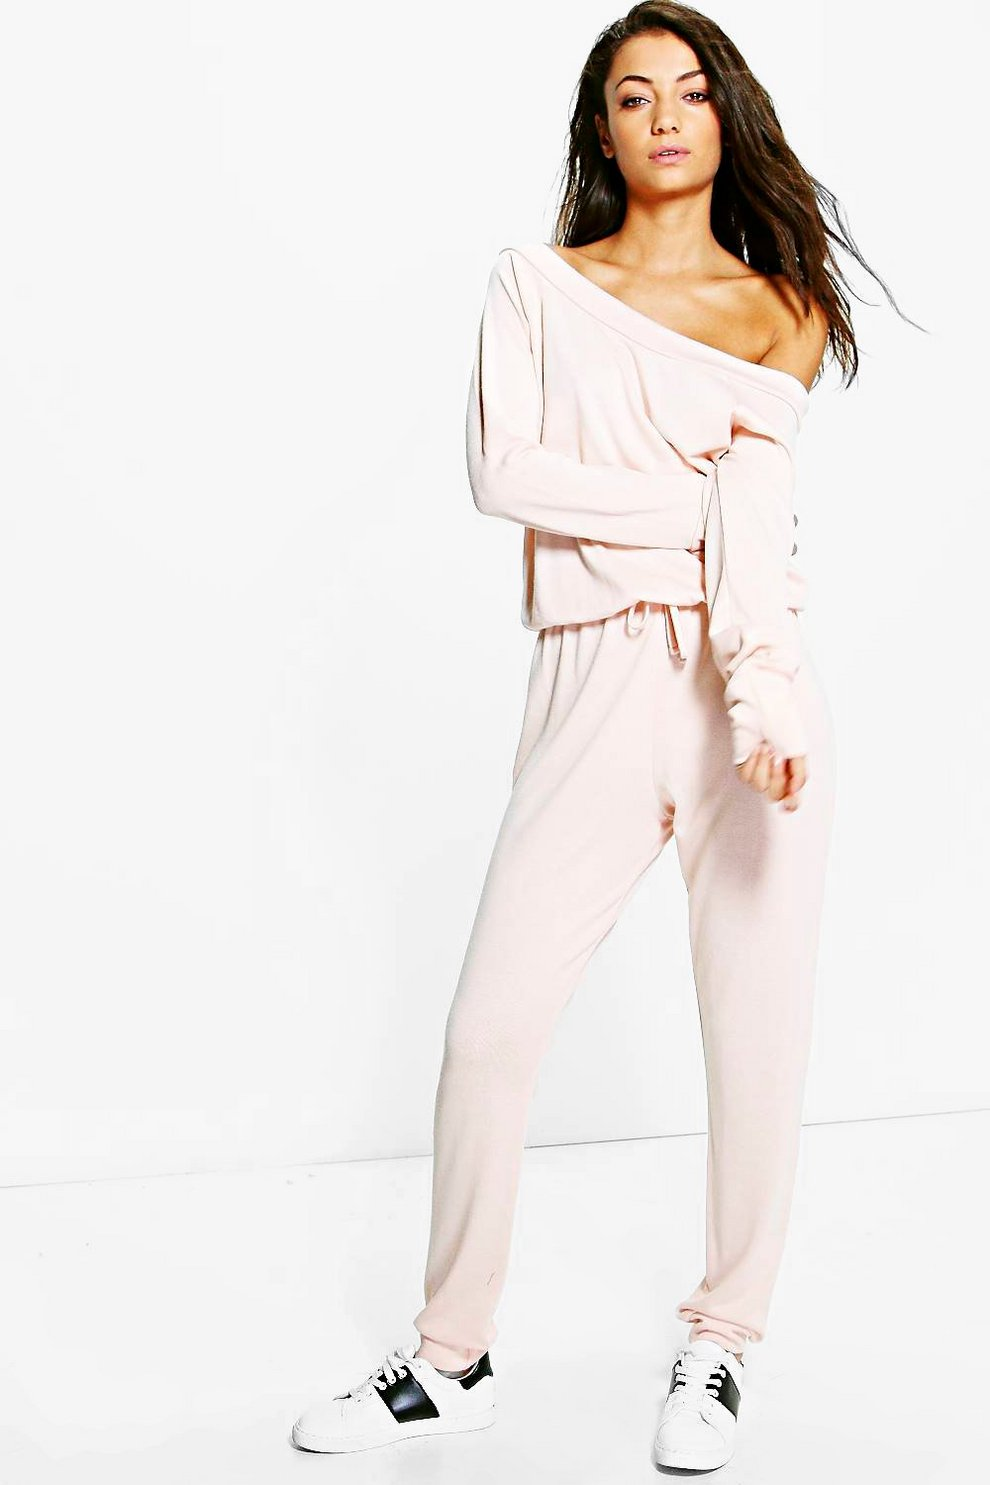 In China For Sale Boohoo Tall Slash Neck Lounge Jumpsuit Buy Cheap With Credit Card kEvARCRtj8